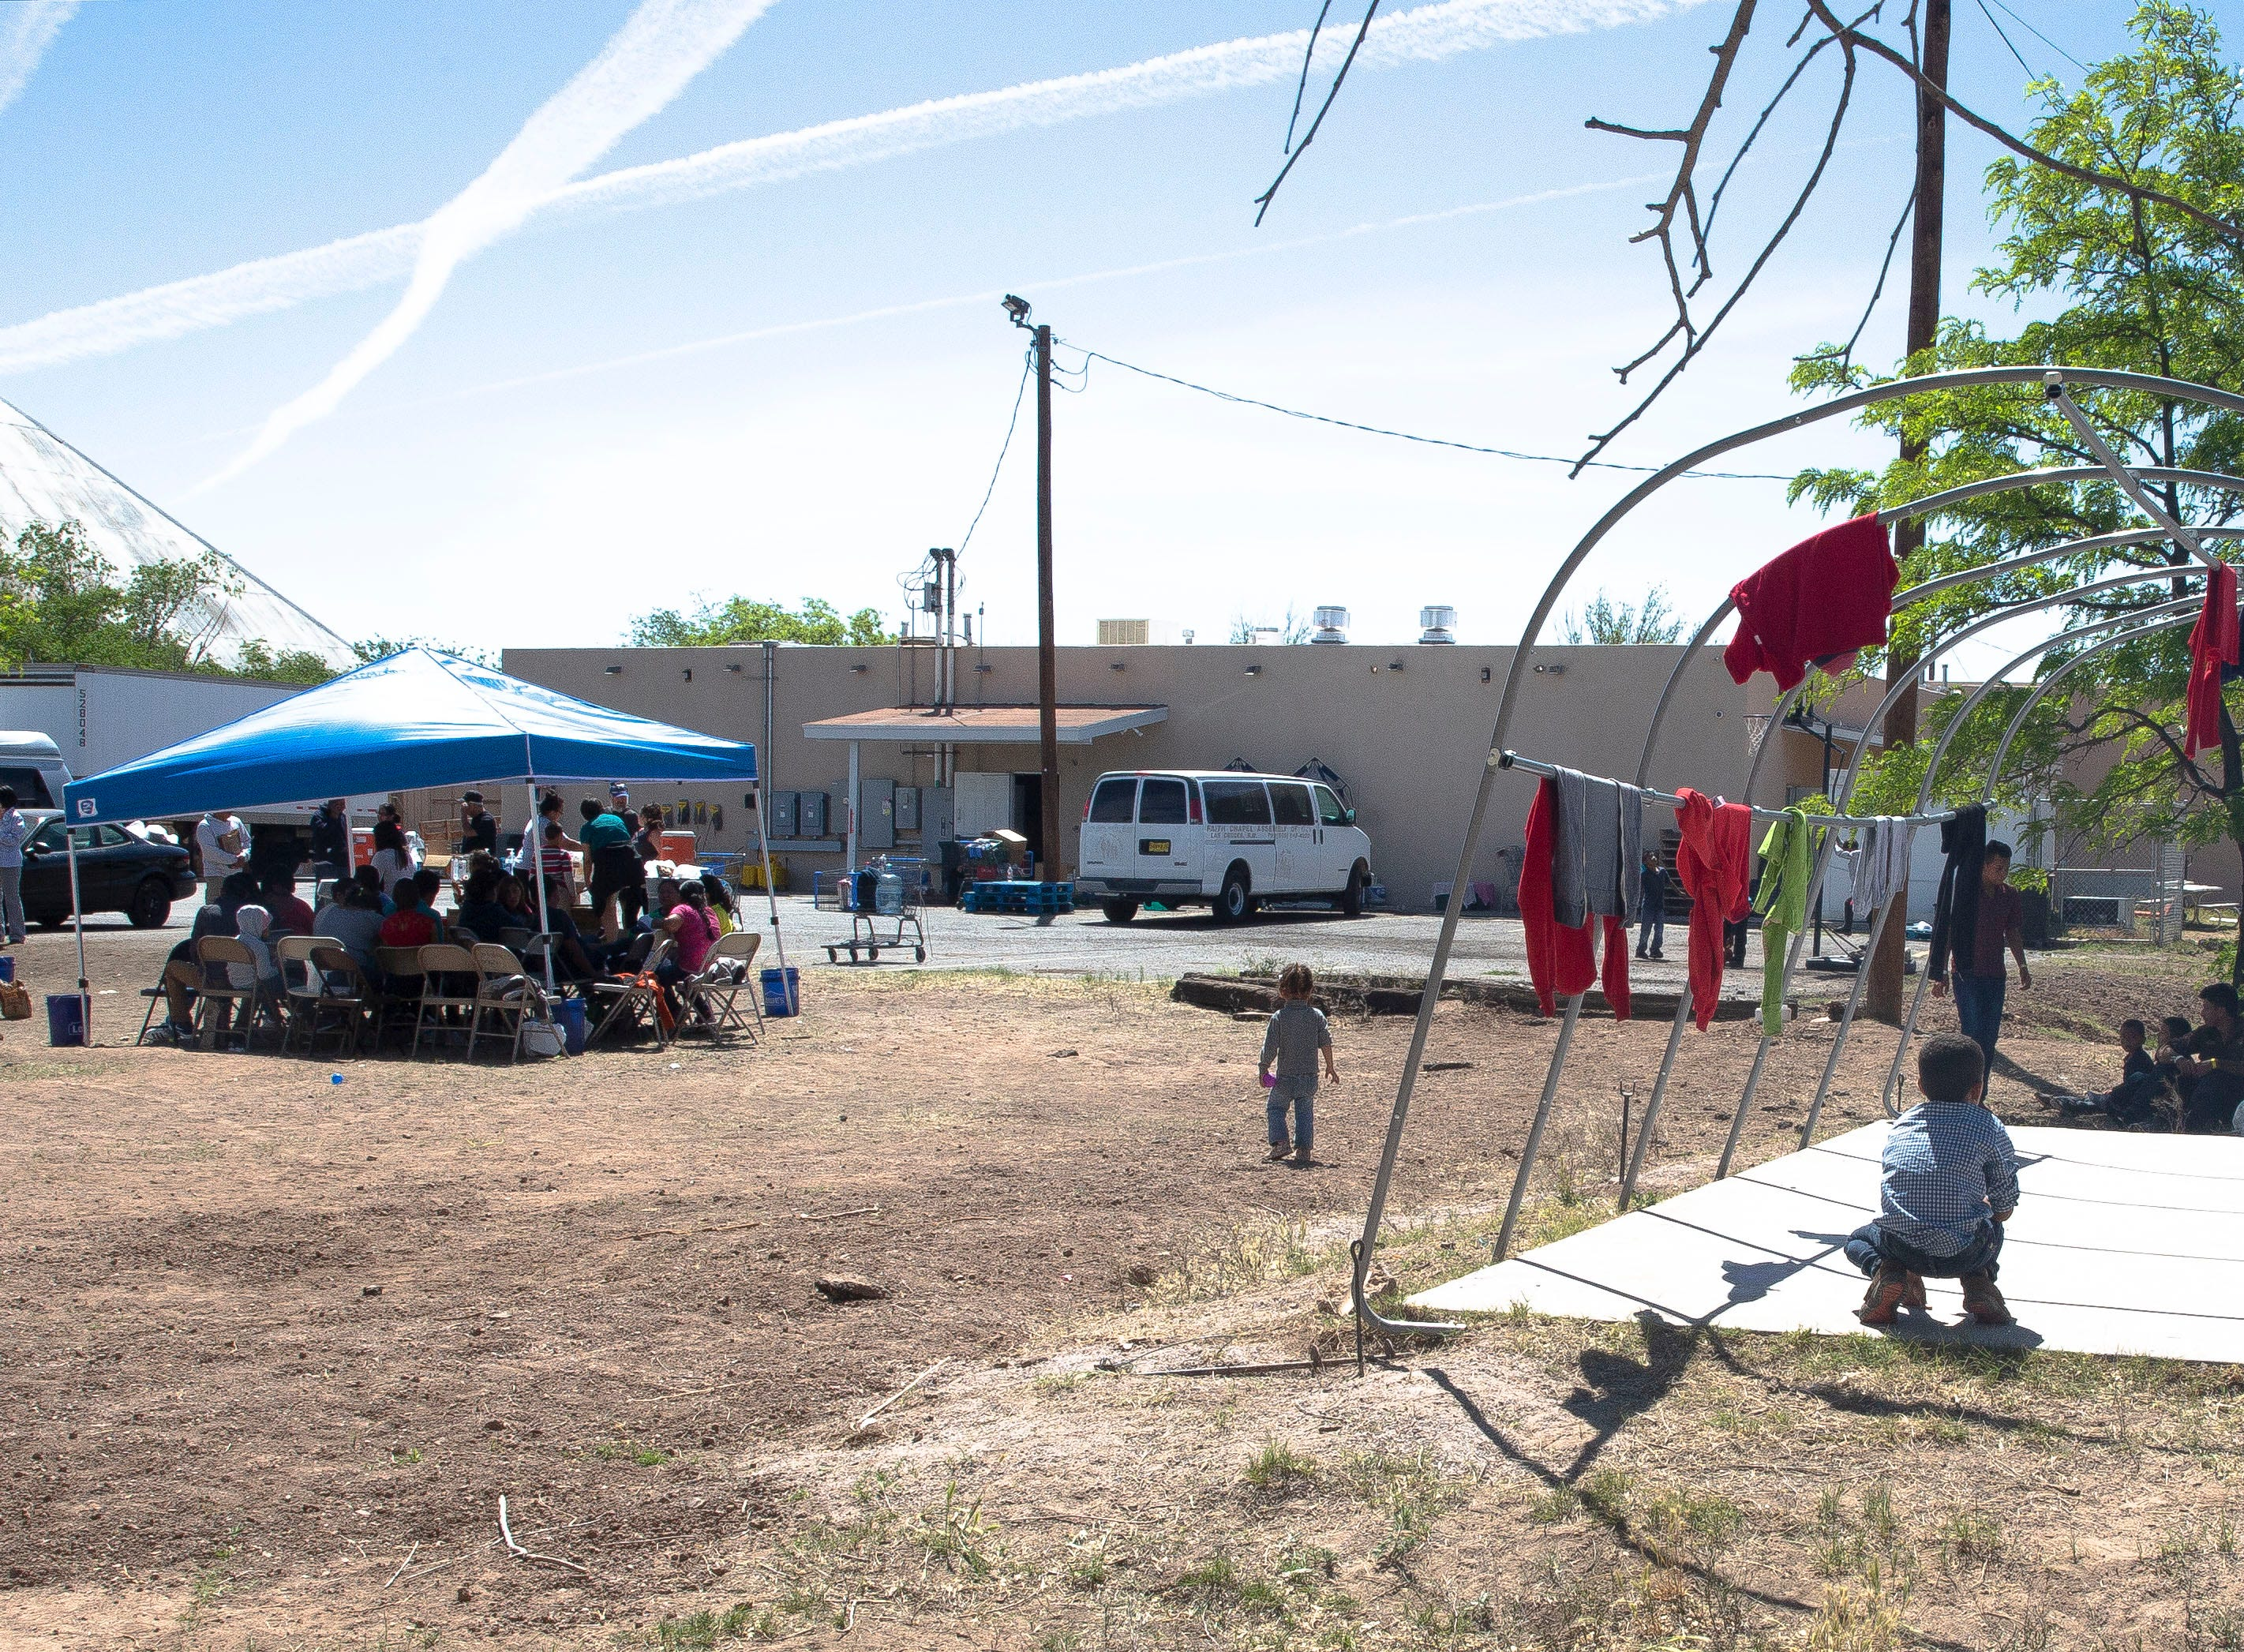 Migrant families and children wait for the next step of their journey Monday April 15, 2019, at the Gospel Rescue Mission in Las Cruces.